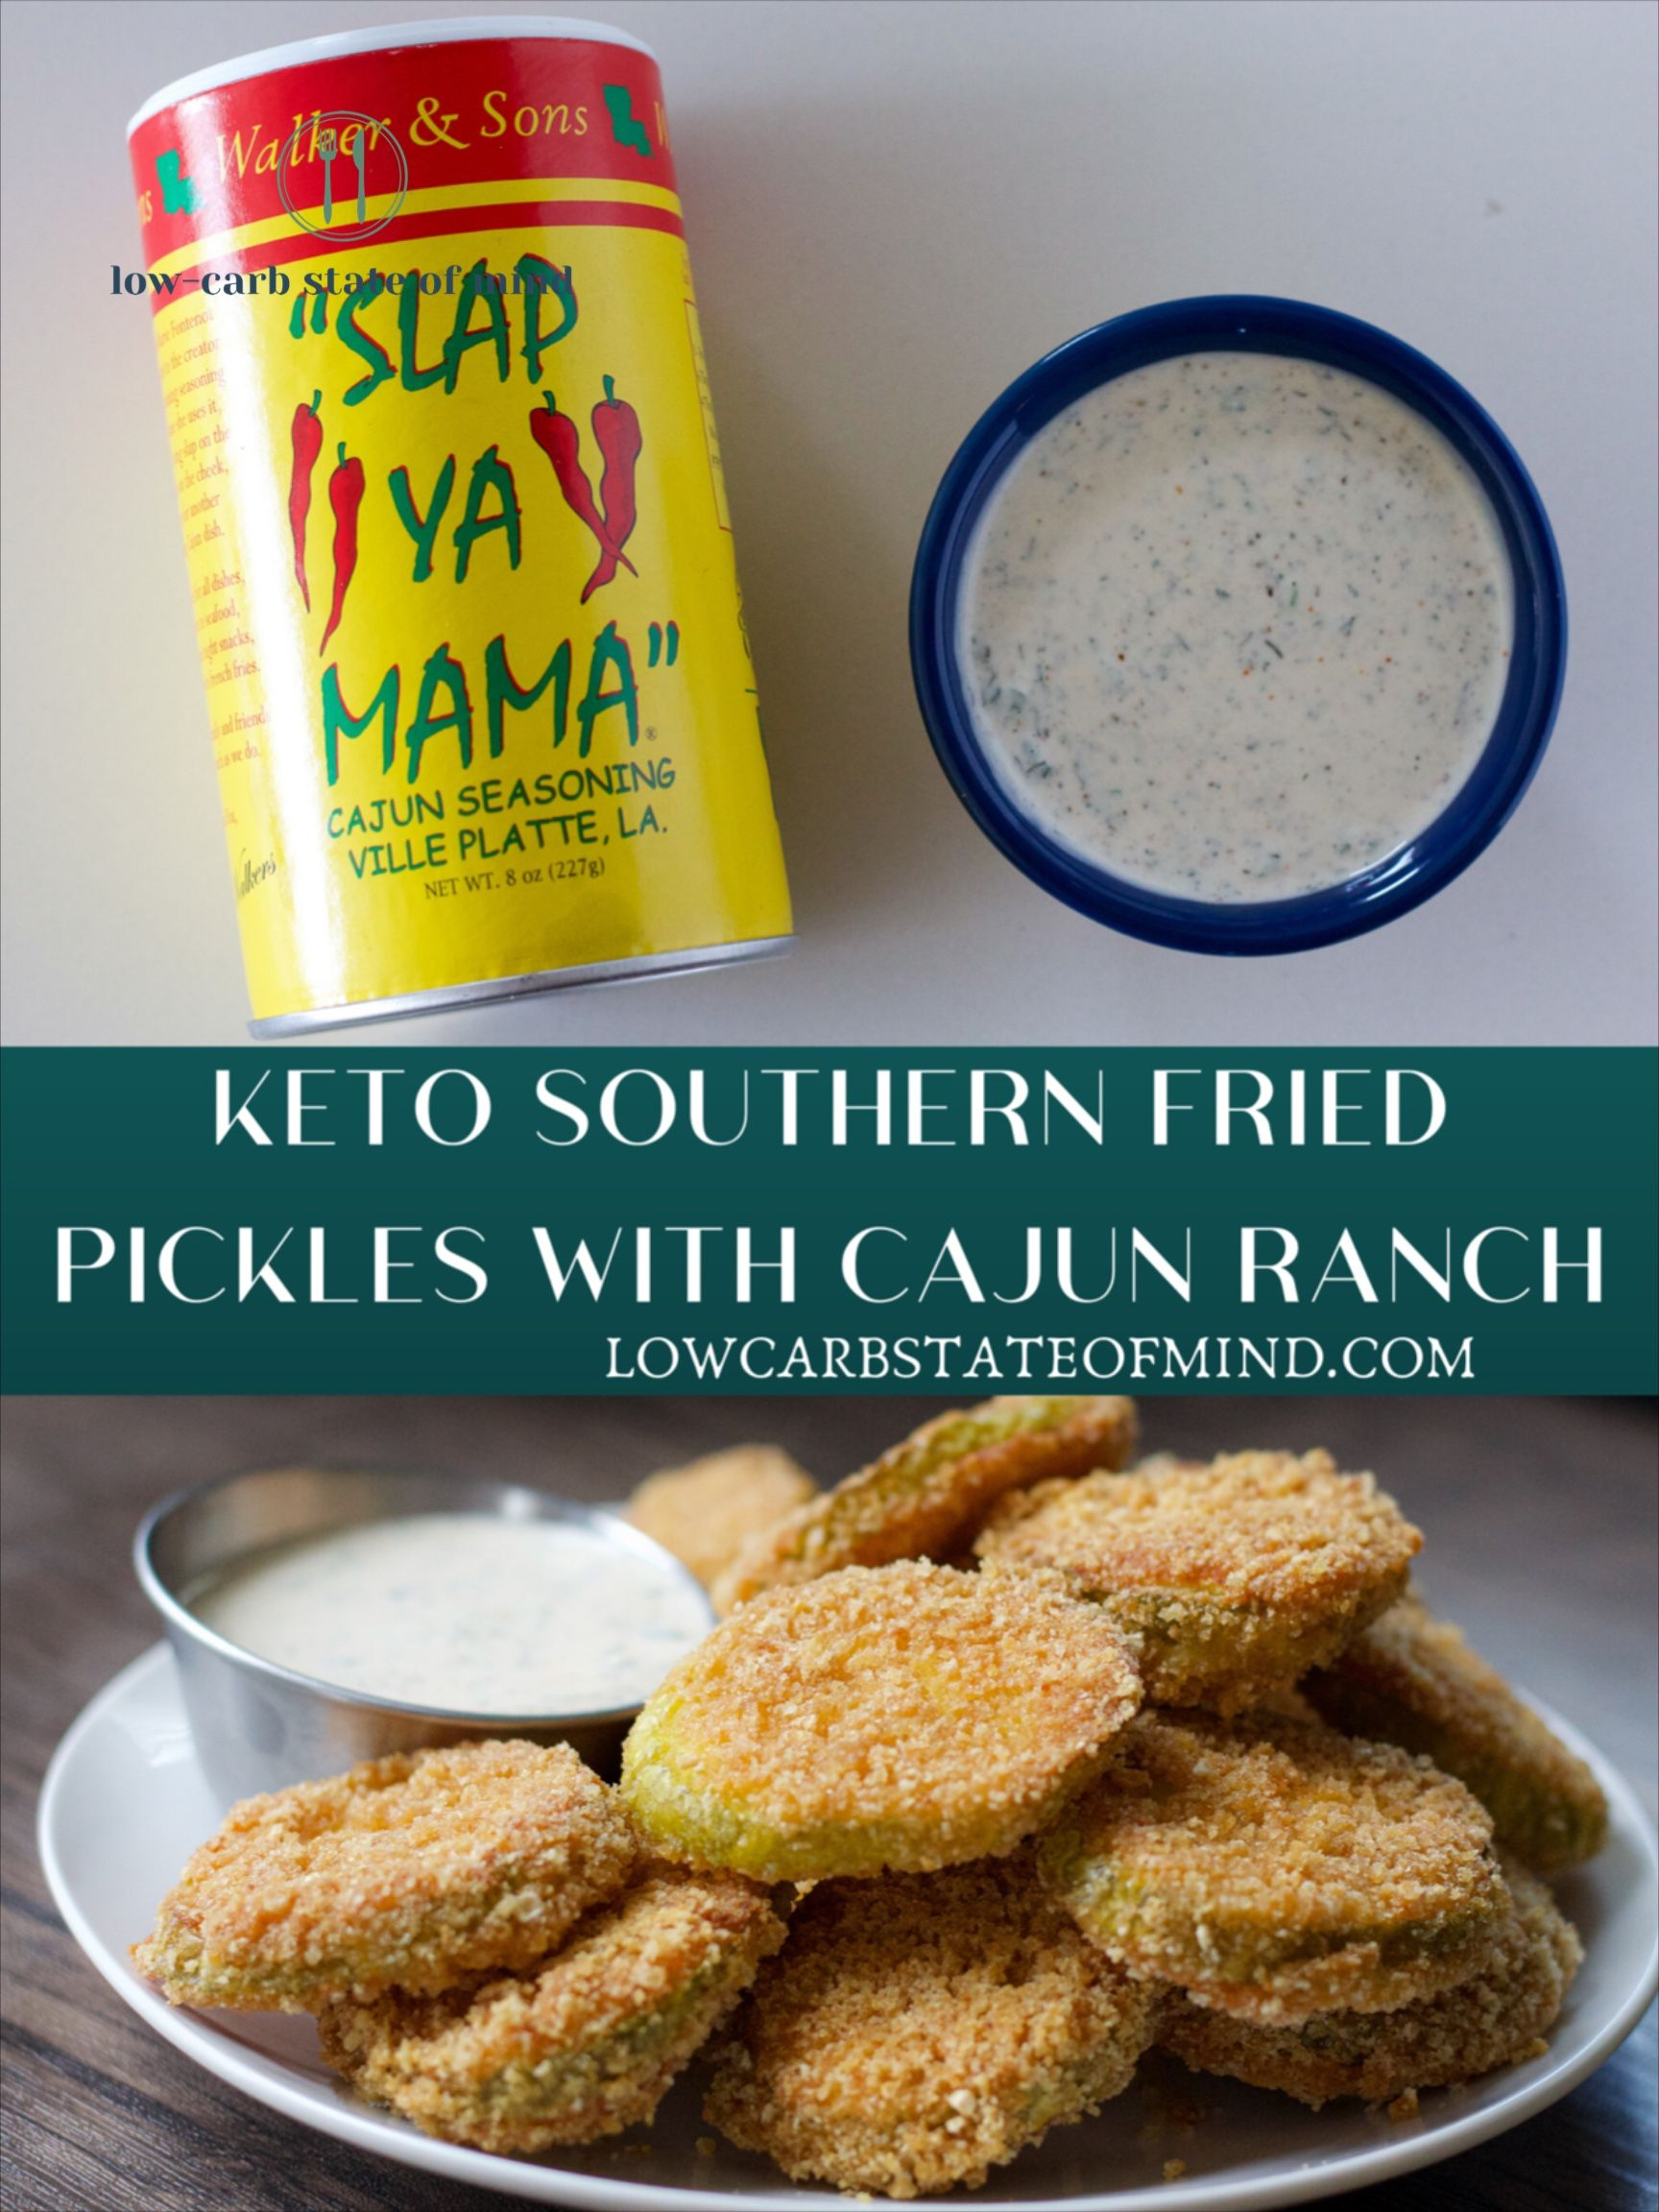 KETO FRIED PICKLES WITH CAJUN RANCH - Low Carb State of Mind